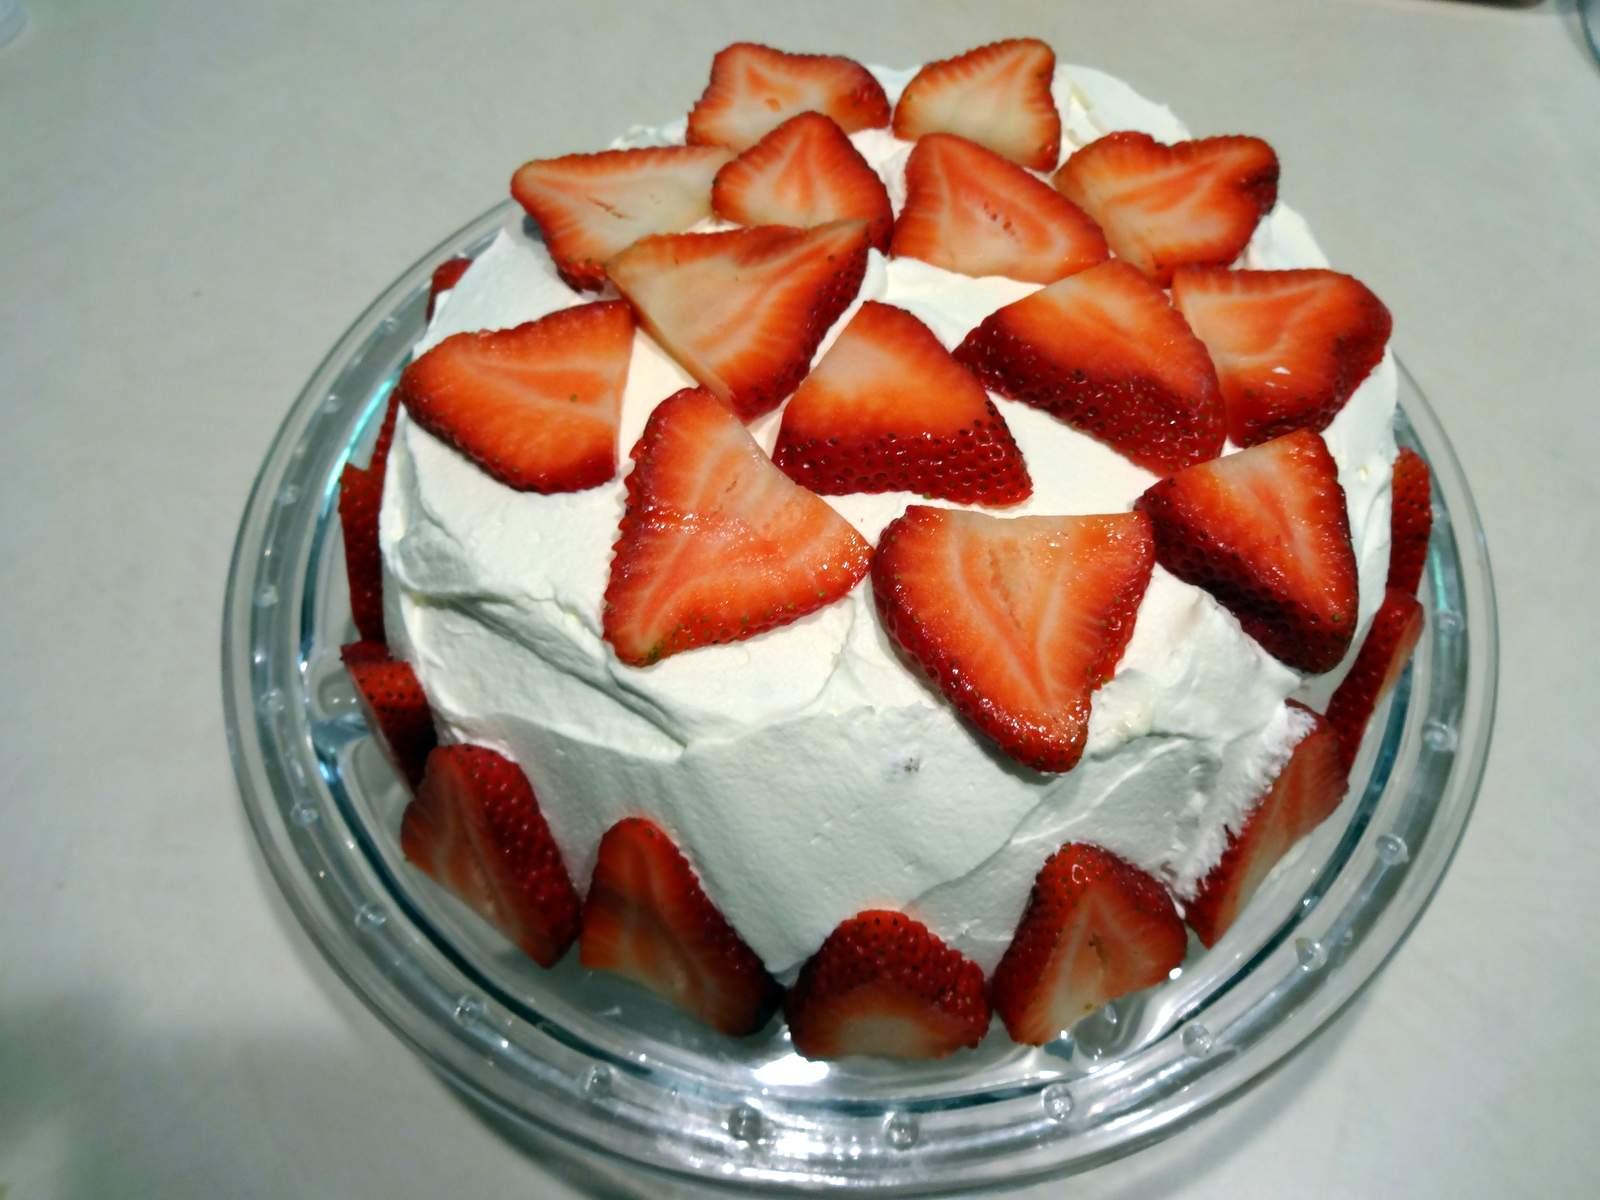 Of Baking Cakes For Everyone As A Birthday Present And This Year My Mom Asked An Angel Food Cake With Whipped Cream Strawberries